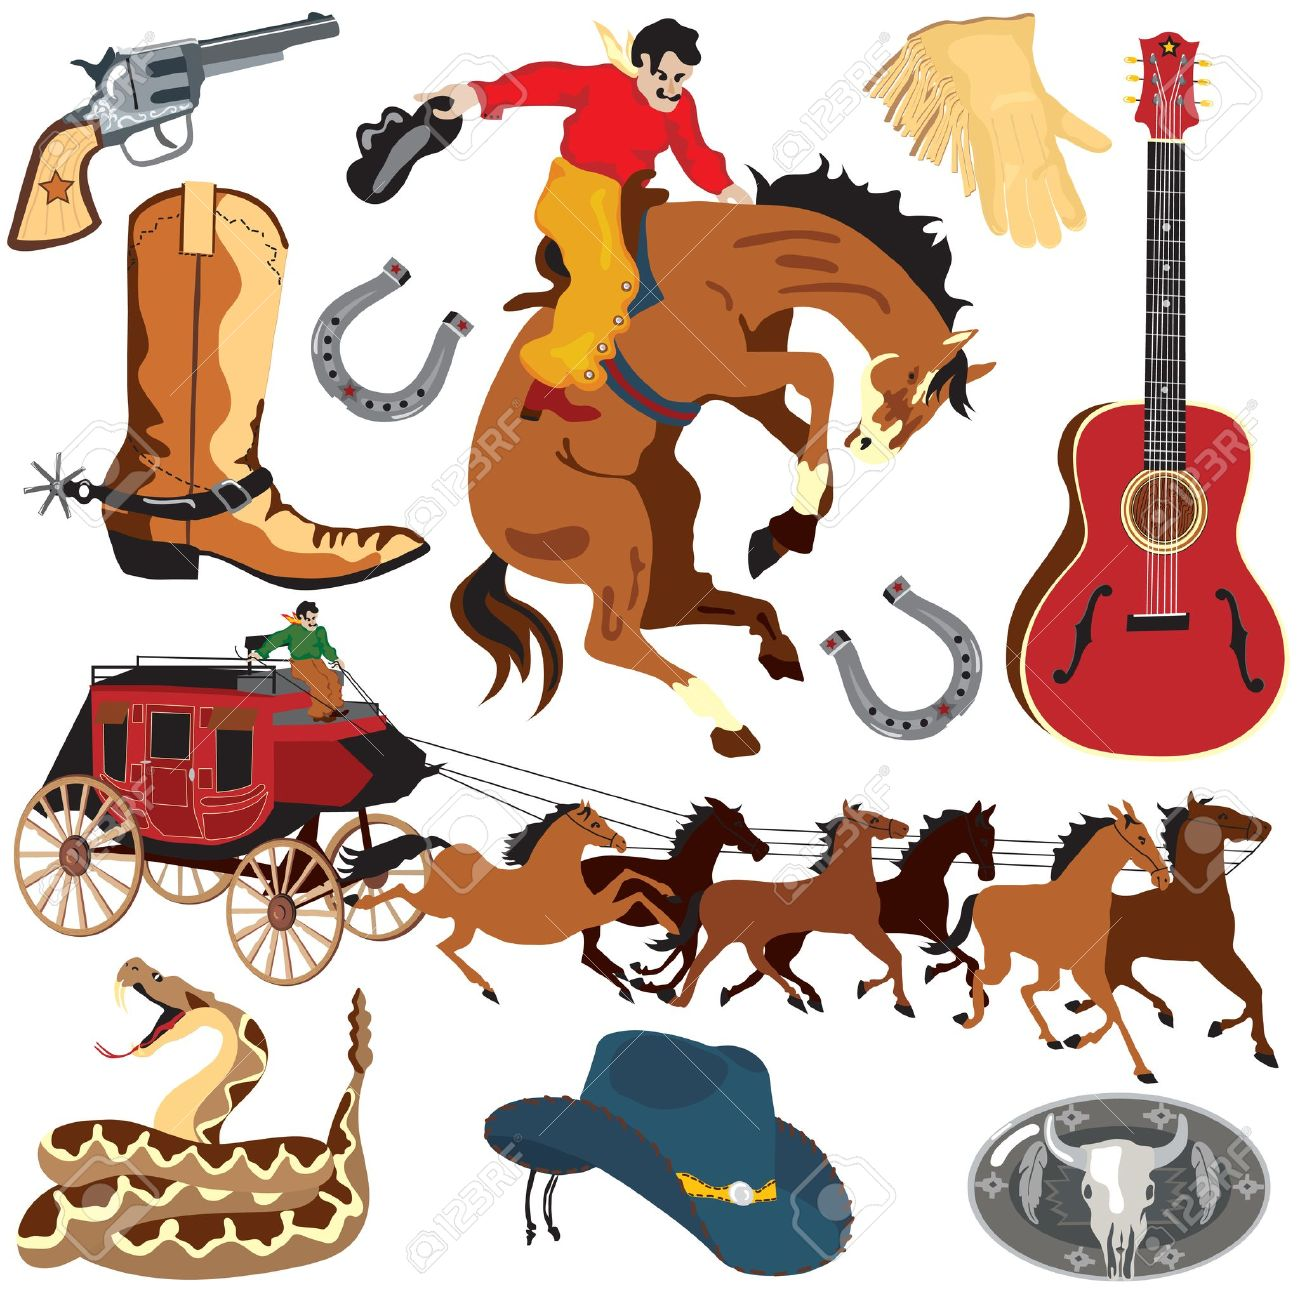 Western Clipart. Resolution 1300x1300 .